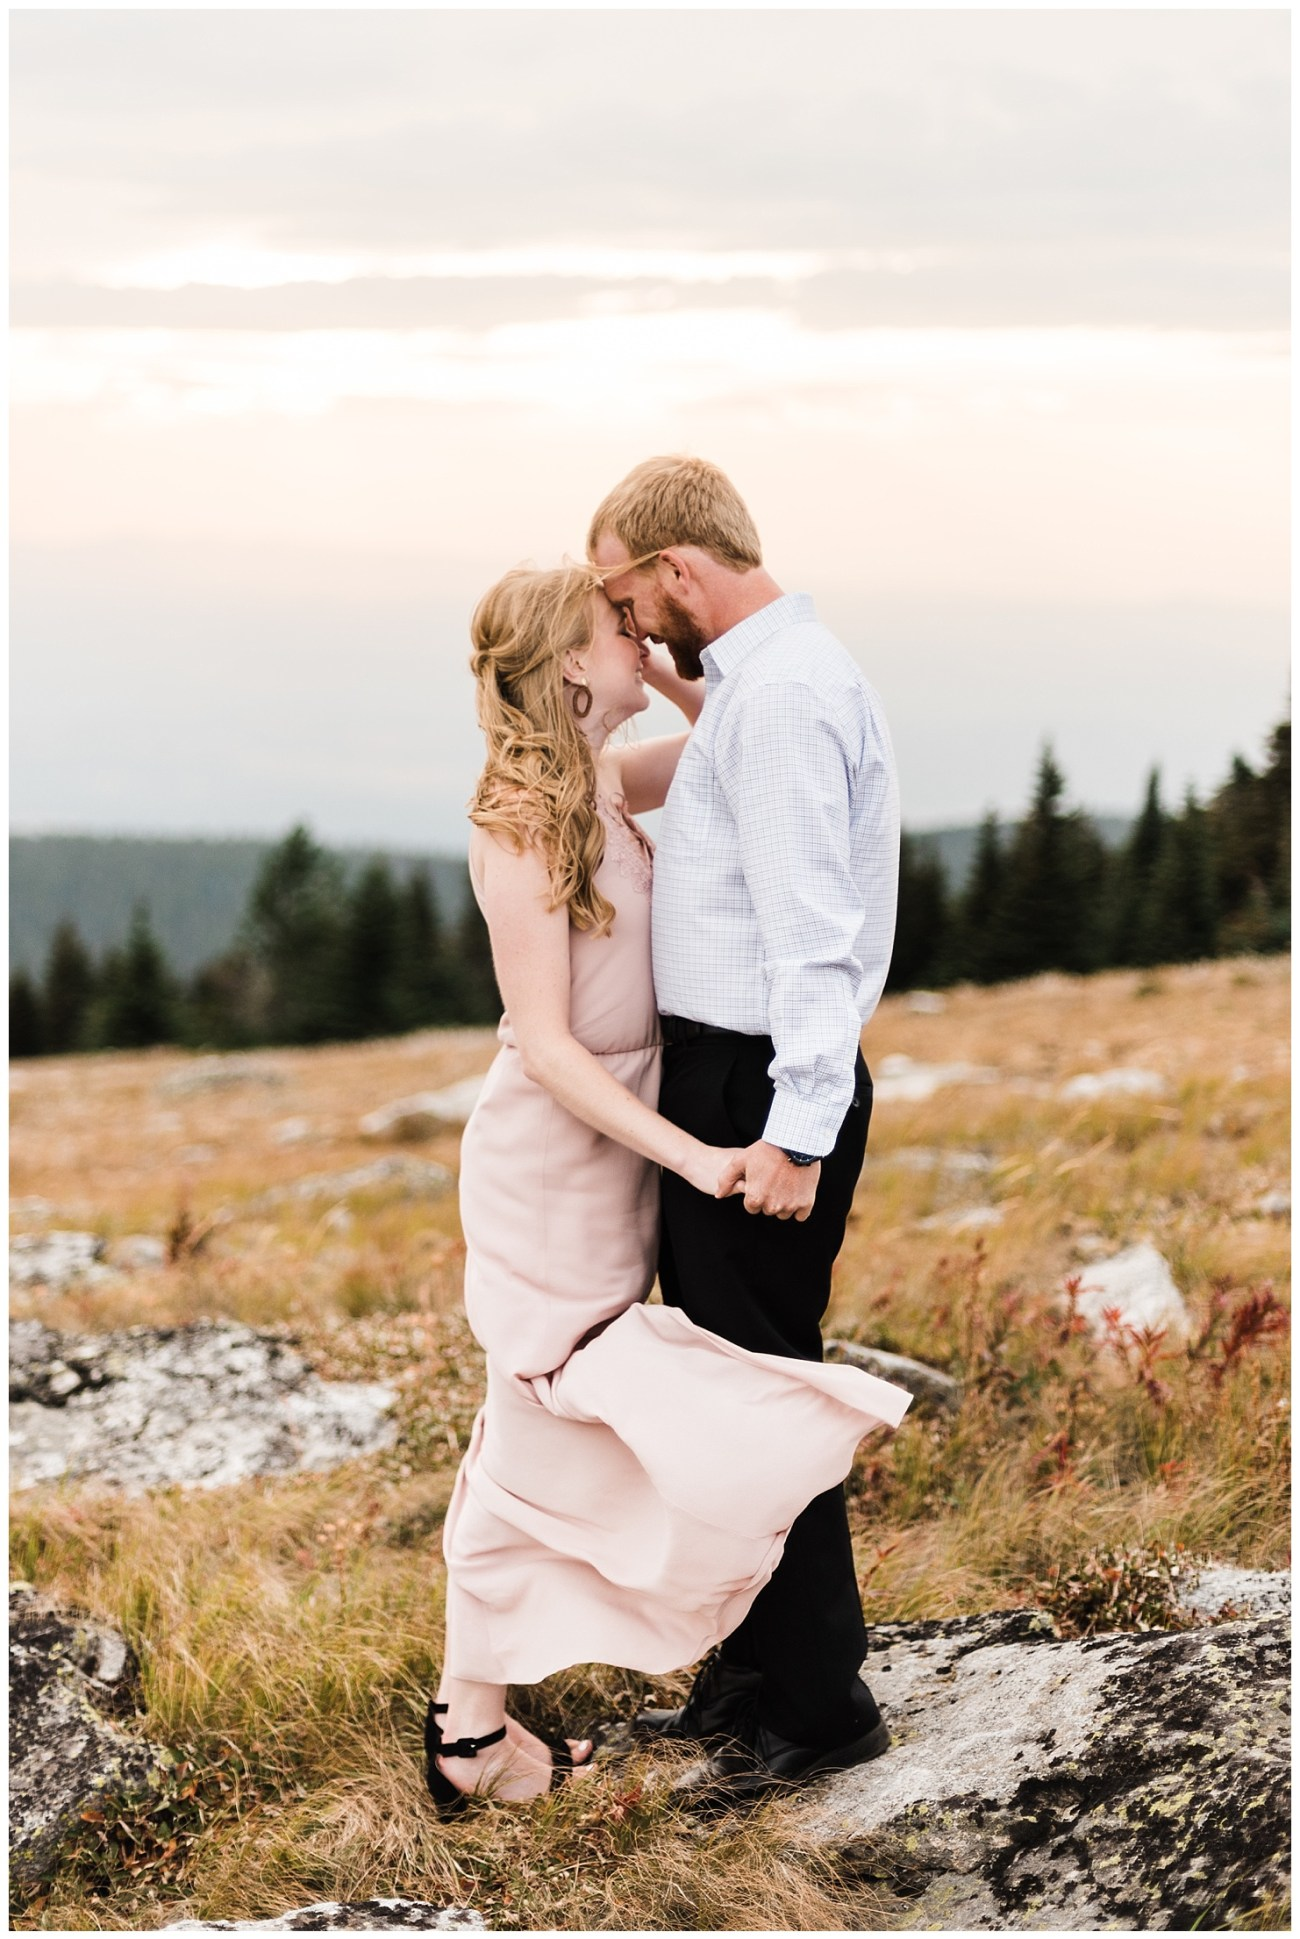 Mt. Spokane Engagement Session by Forthright Photo